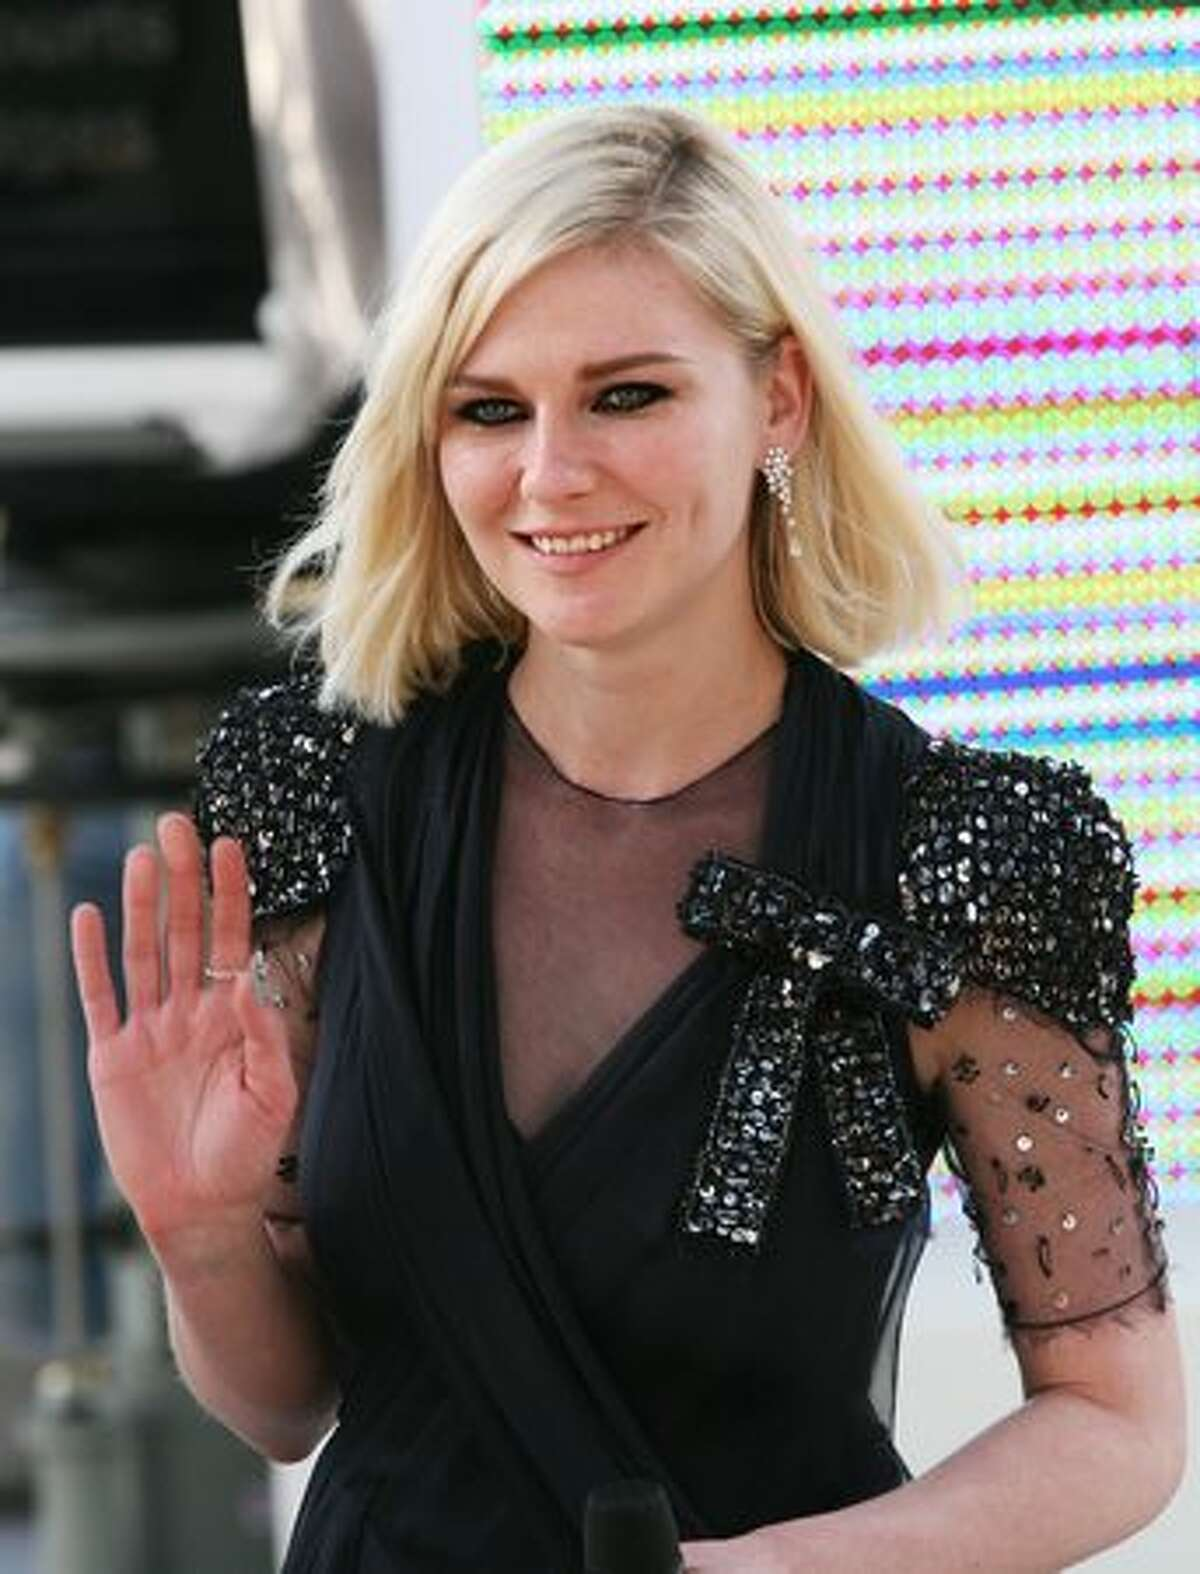 US actress Kirsten Dunst attends the Canal+ TV show